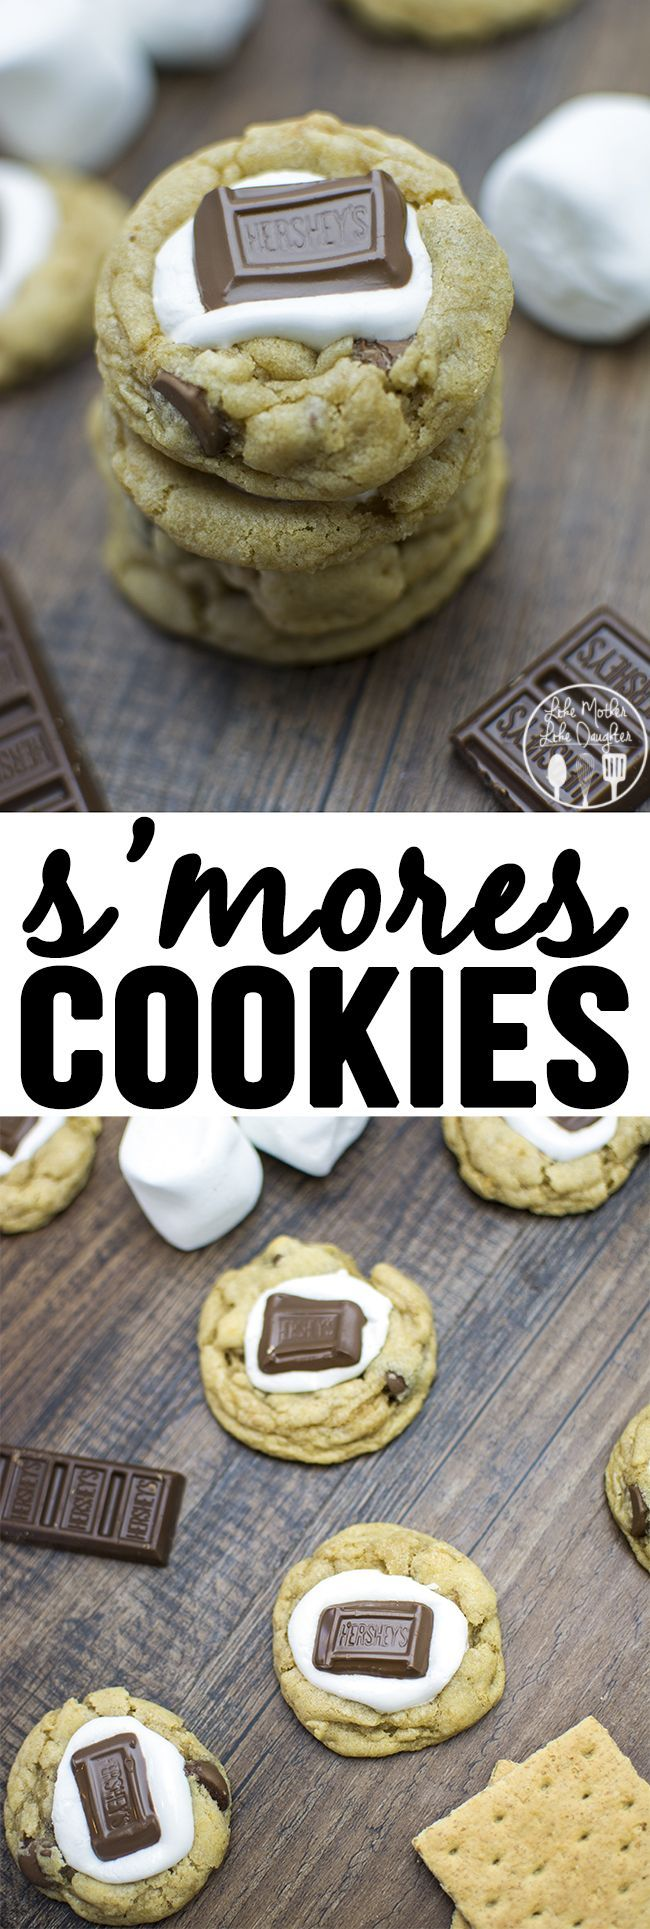 Cookies - These delicious s'mores cookies have a simple chocolate chip cookie base mixed with a graham cracker crumble and are topped with a gooey marshmallow and hershey's chocolate for the great taste of s'mores in a delicious cookie!